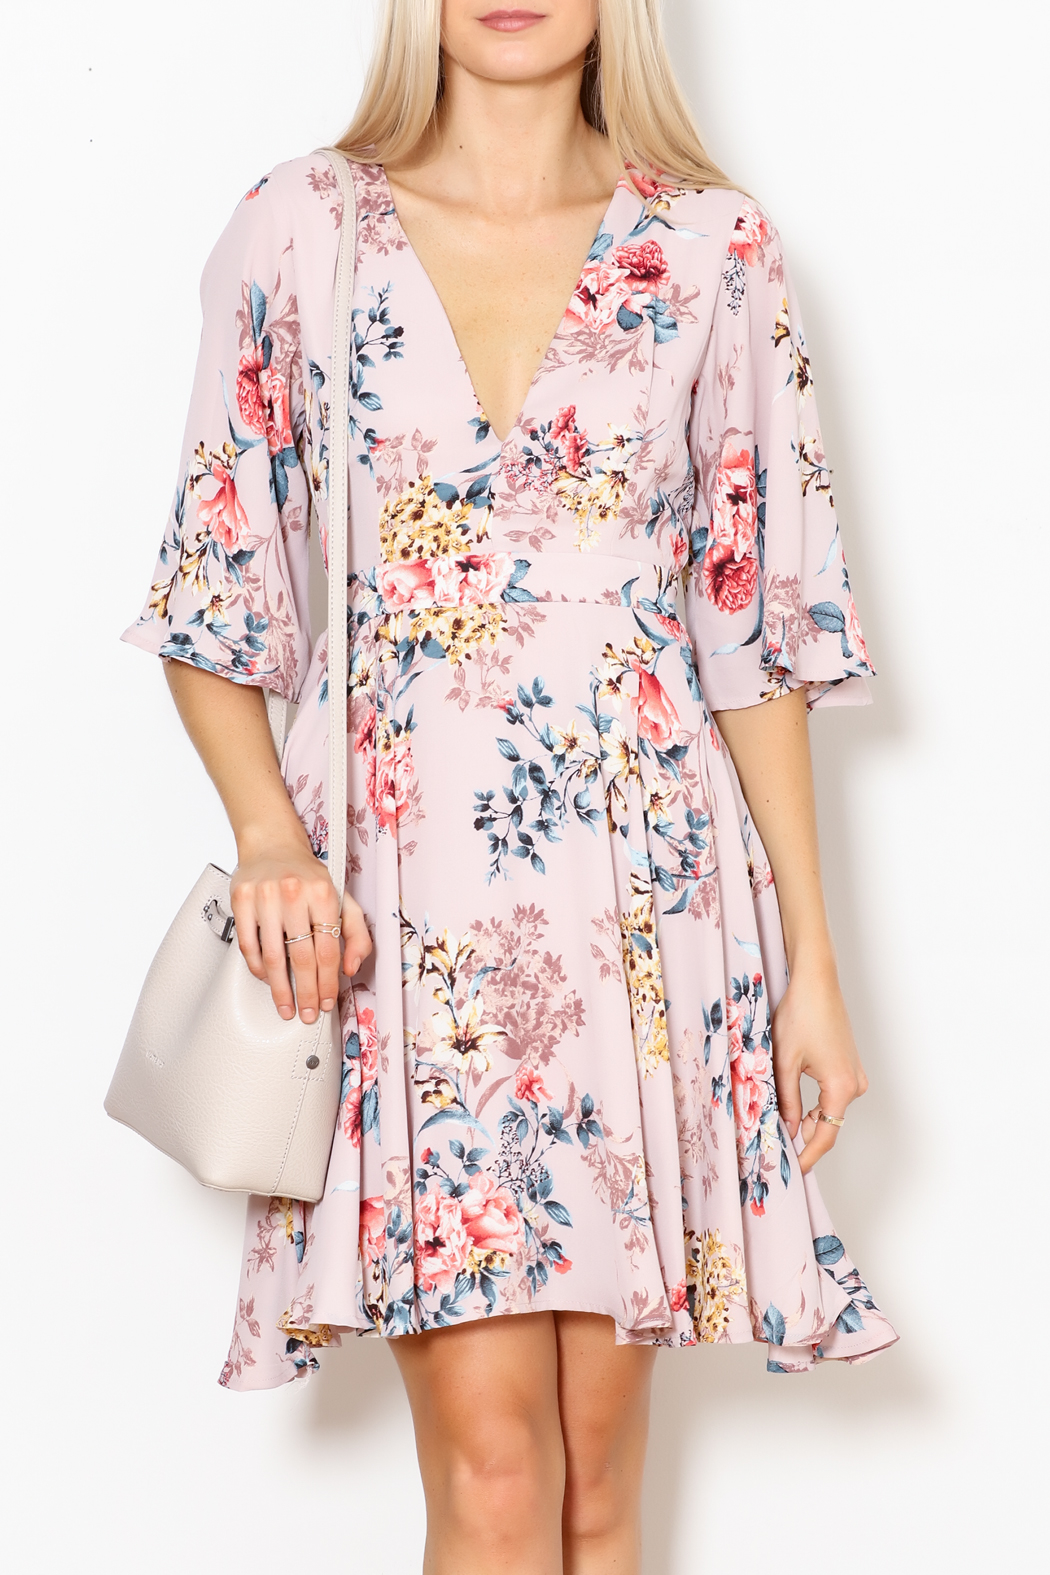 She + Sky Floral Print Dress - Main Image